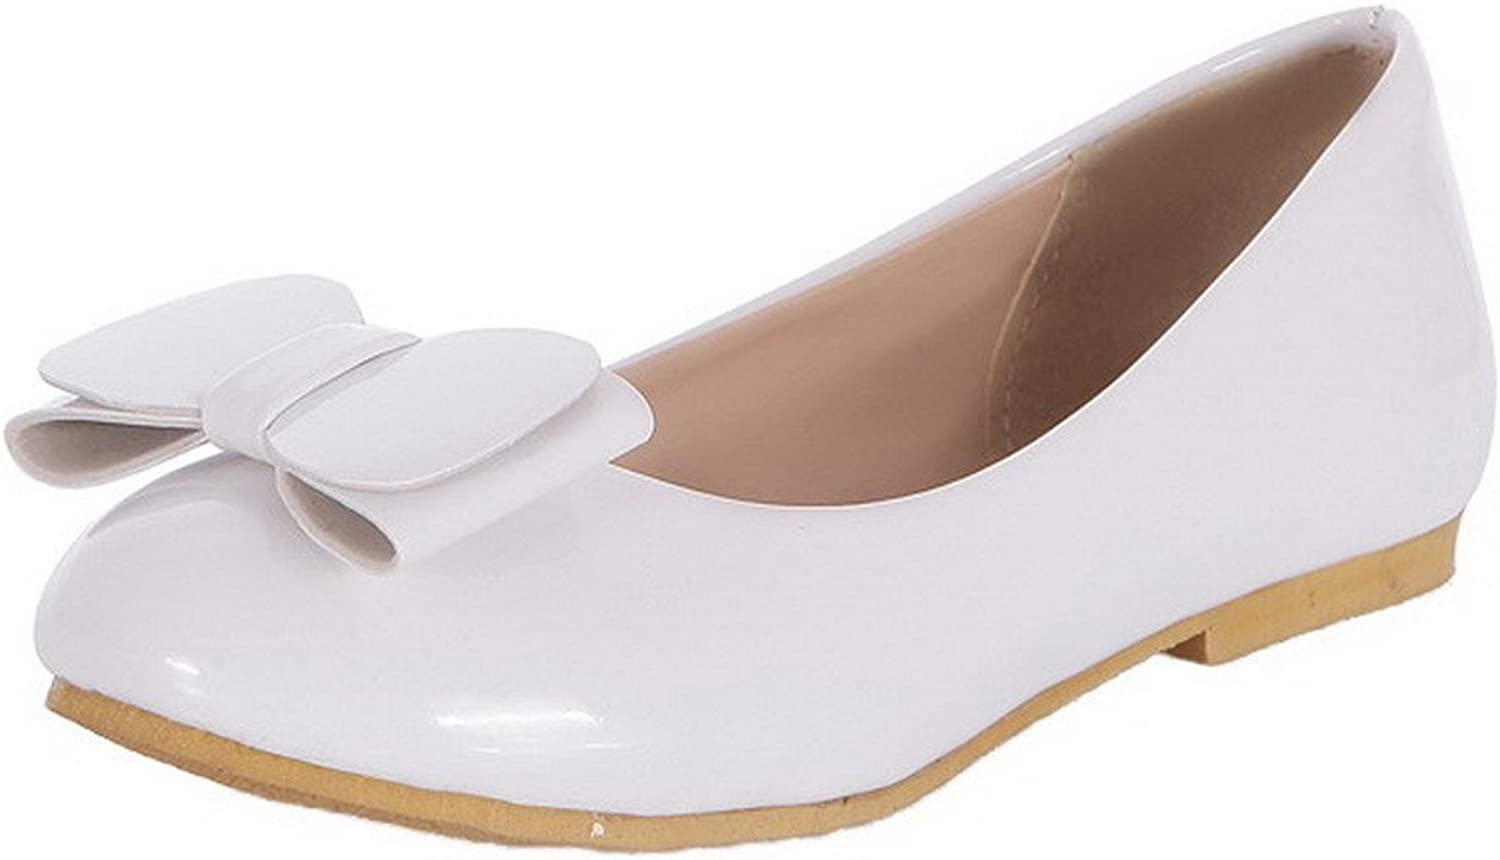 WeenFashion Women's Pull-On Low-Heels Patent Leather Solid Round-Toe Pumps-shoes